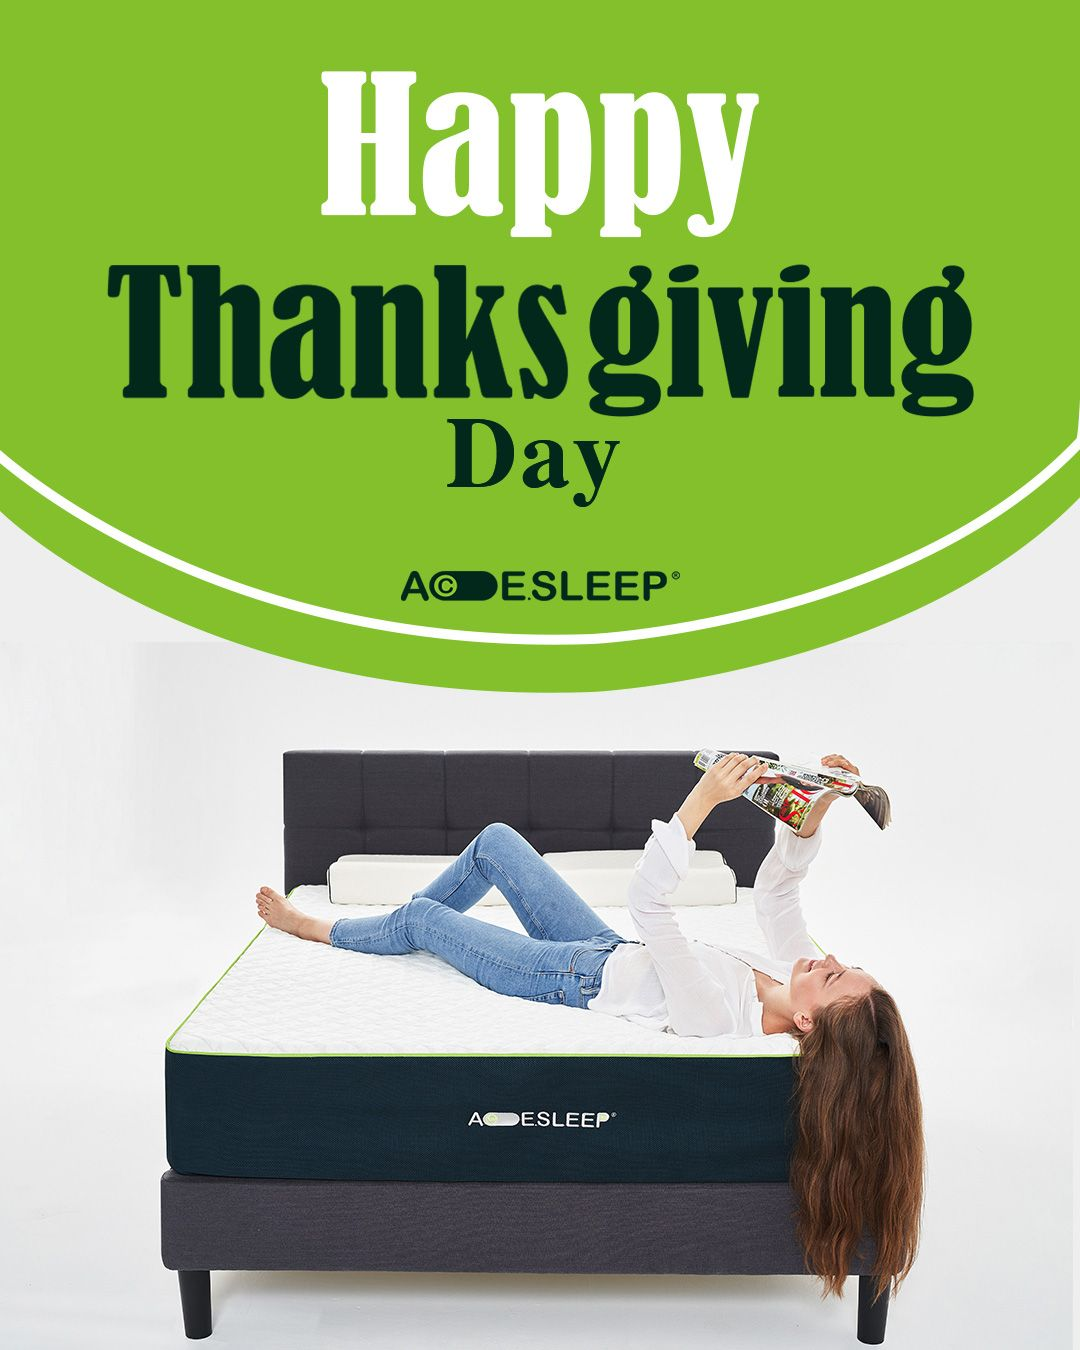 1 Best Rated Cooling Mattress In A Box Acesleep Mattress Best Mattress Sleep Mattress Better Life